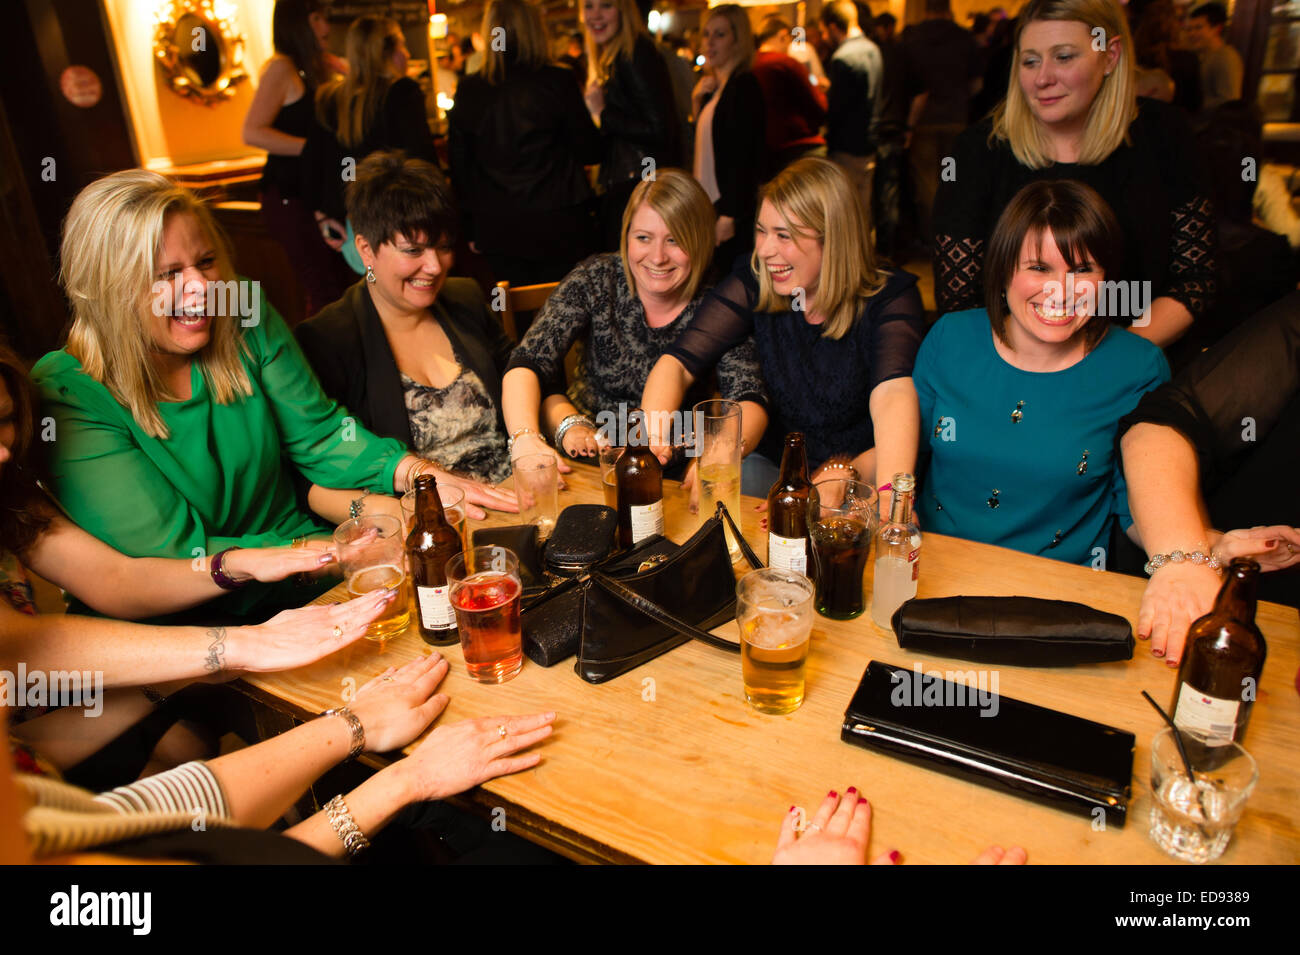 A group of women friends  laughing and enjoying themselves playing a drinking game  in a pub in Aberystwyth  Wales - Stock Image